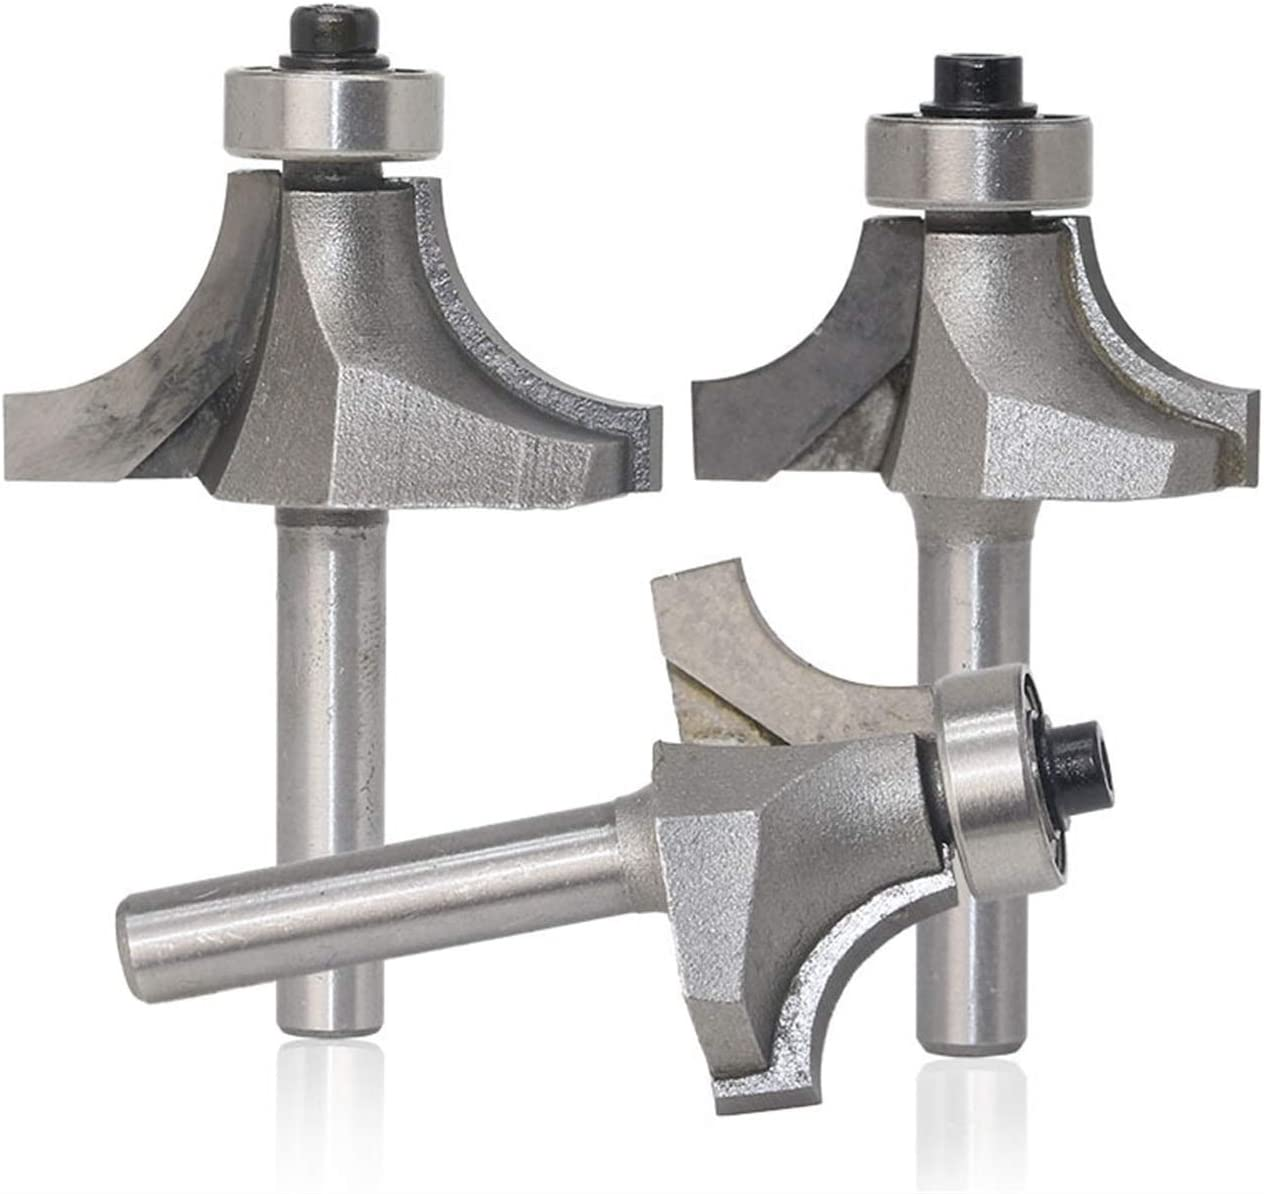 4pcs Zkenyao-Router Bit Radius Round Over Edge Forming Router Bit 1//4 Shank Use Safety Reliable